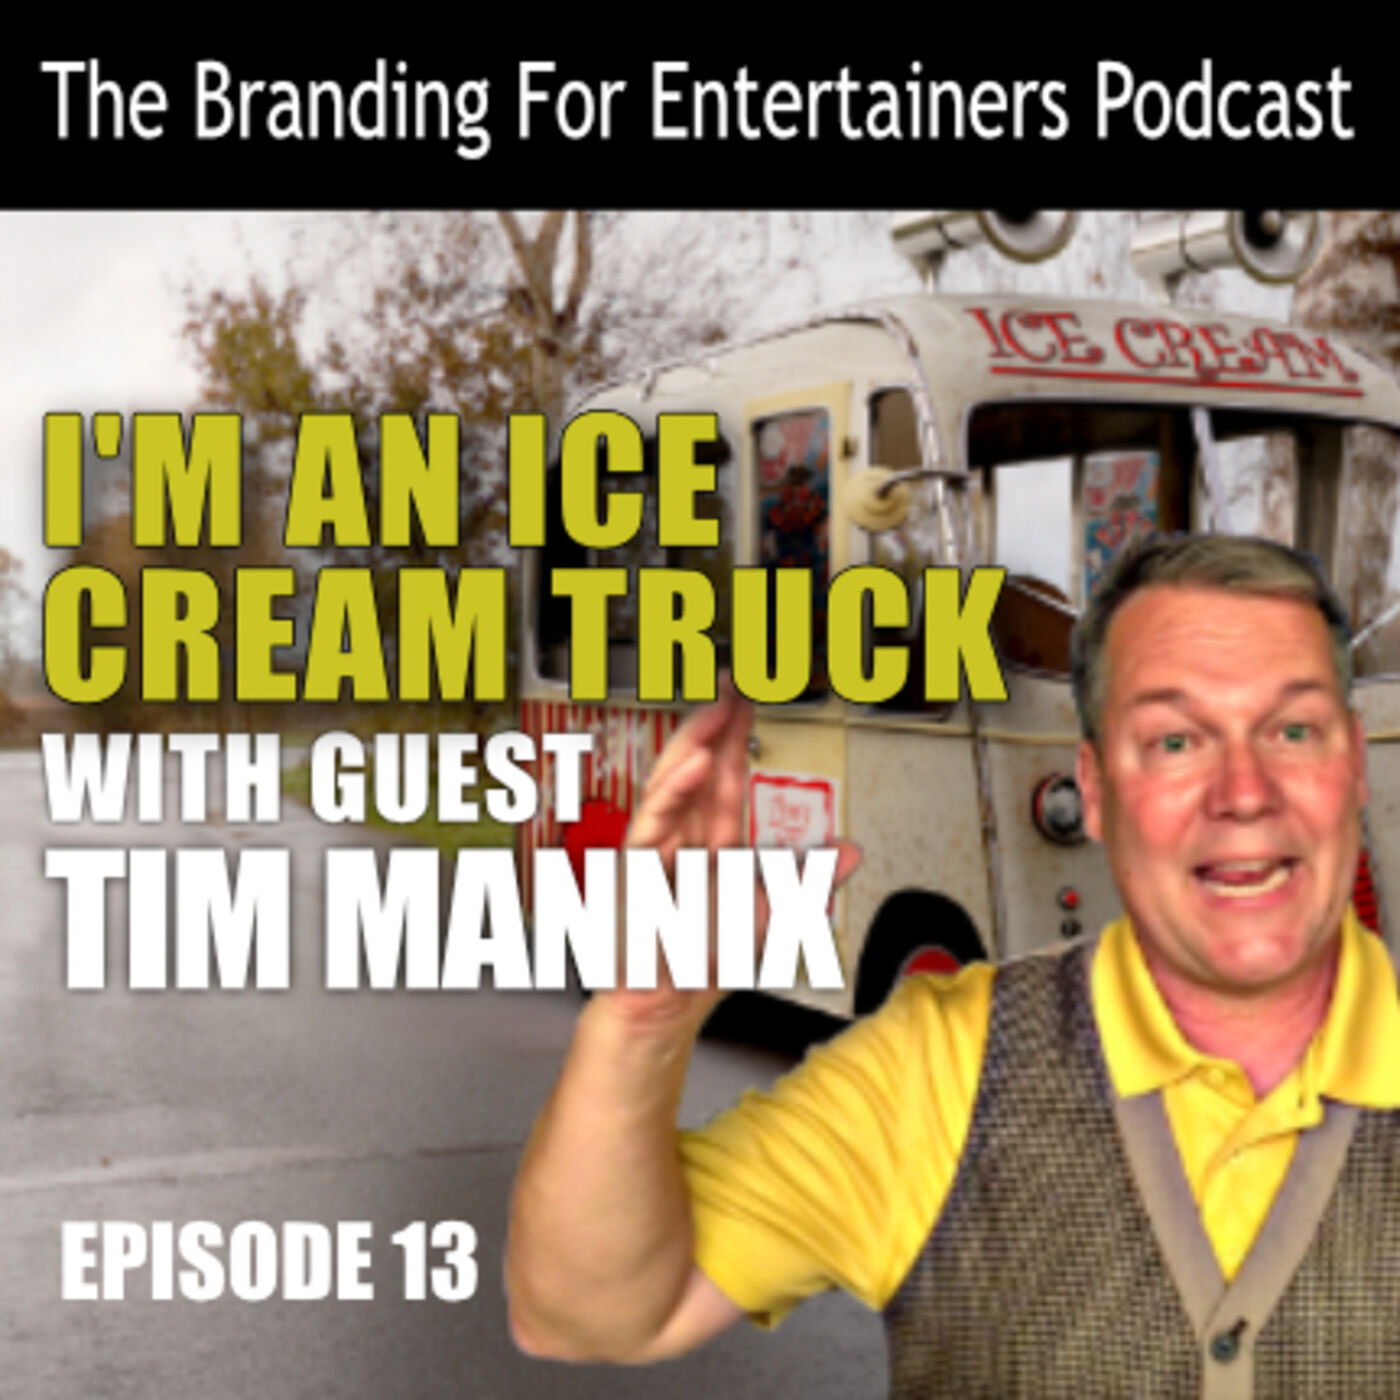 BFE EP13: I'm An Ice Cream Truck with Tim Mannix